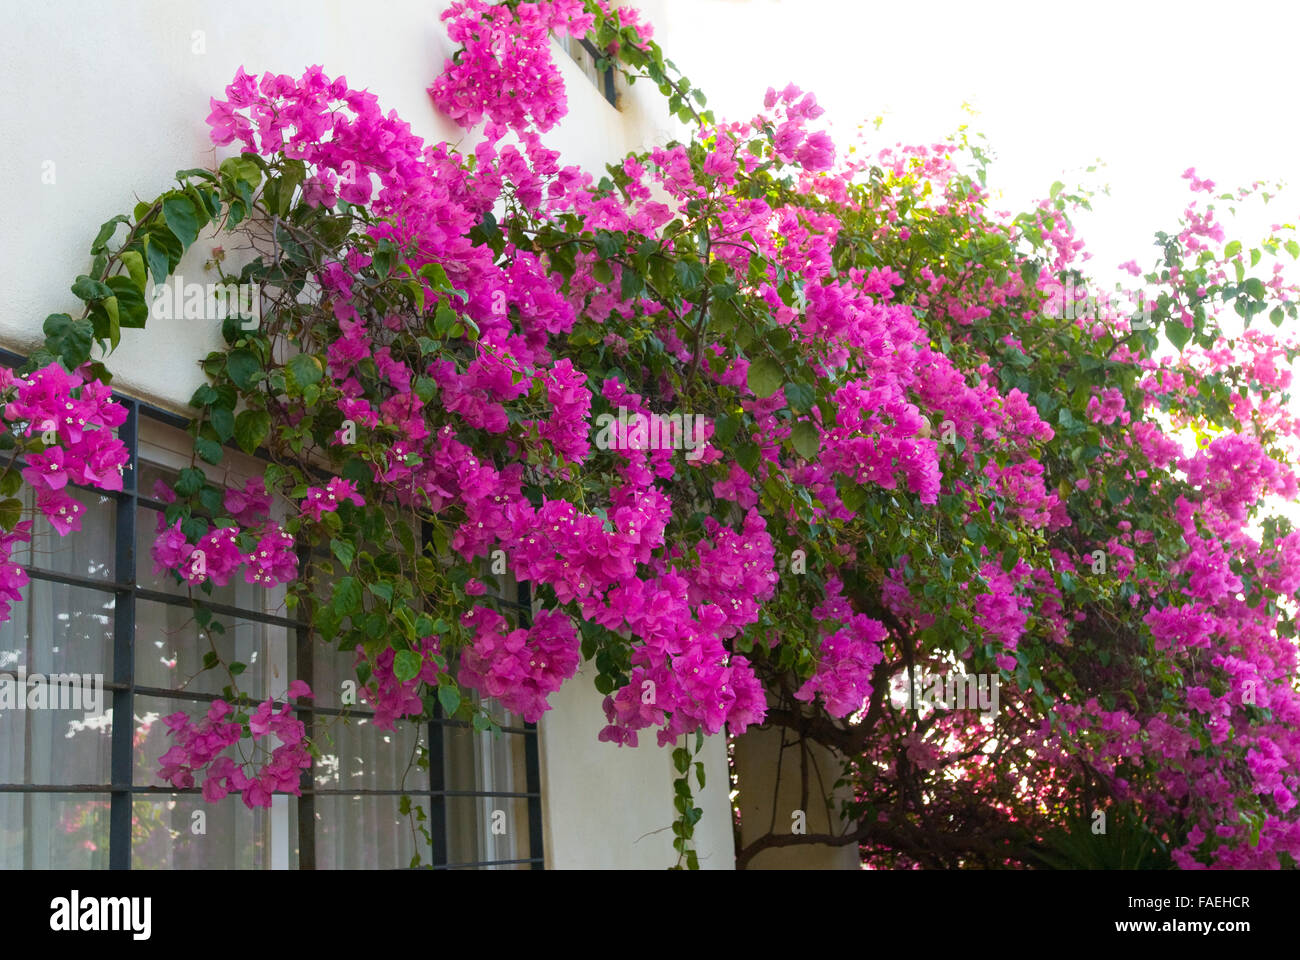 Bougainvillea Vines Growing On Wall Of Home In Acapulco